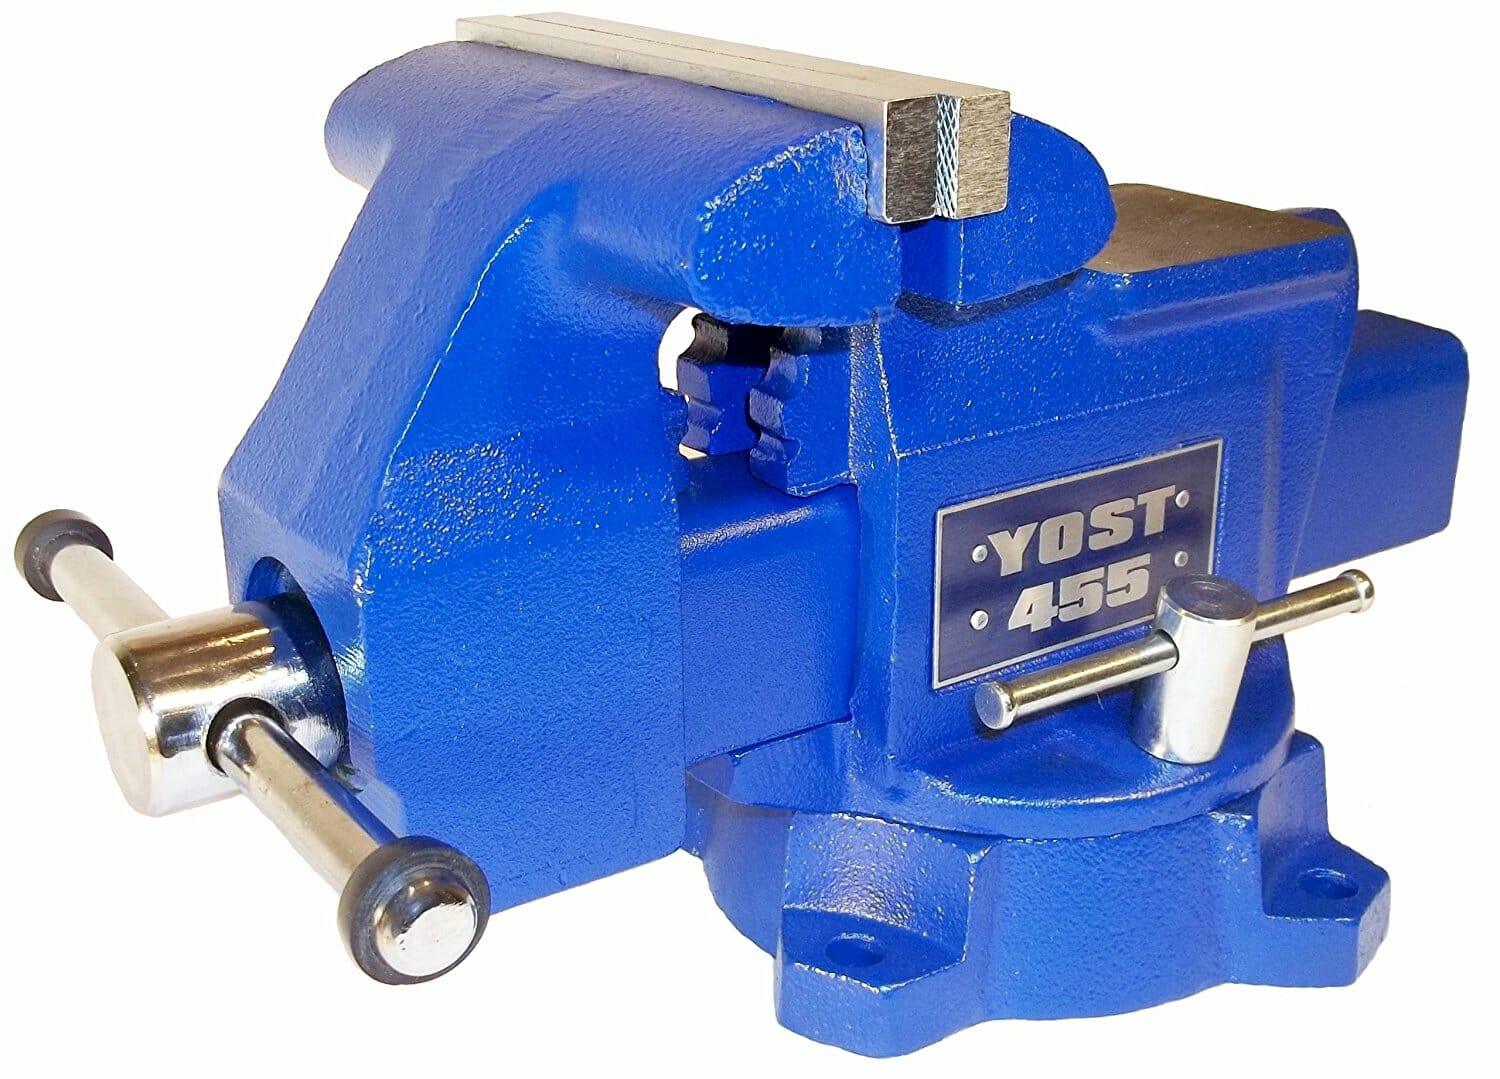 How To Use Of Bench Vise